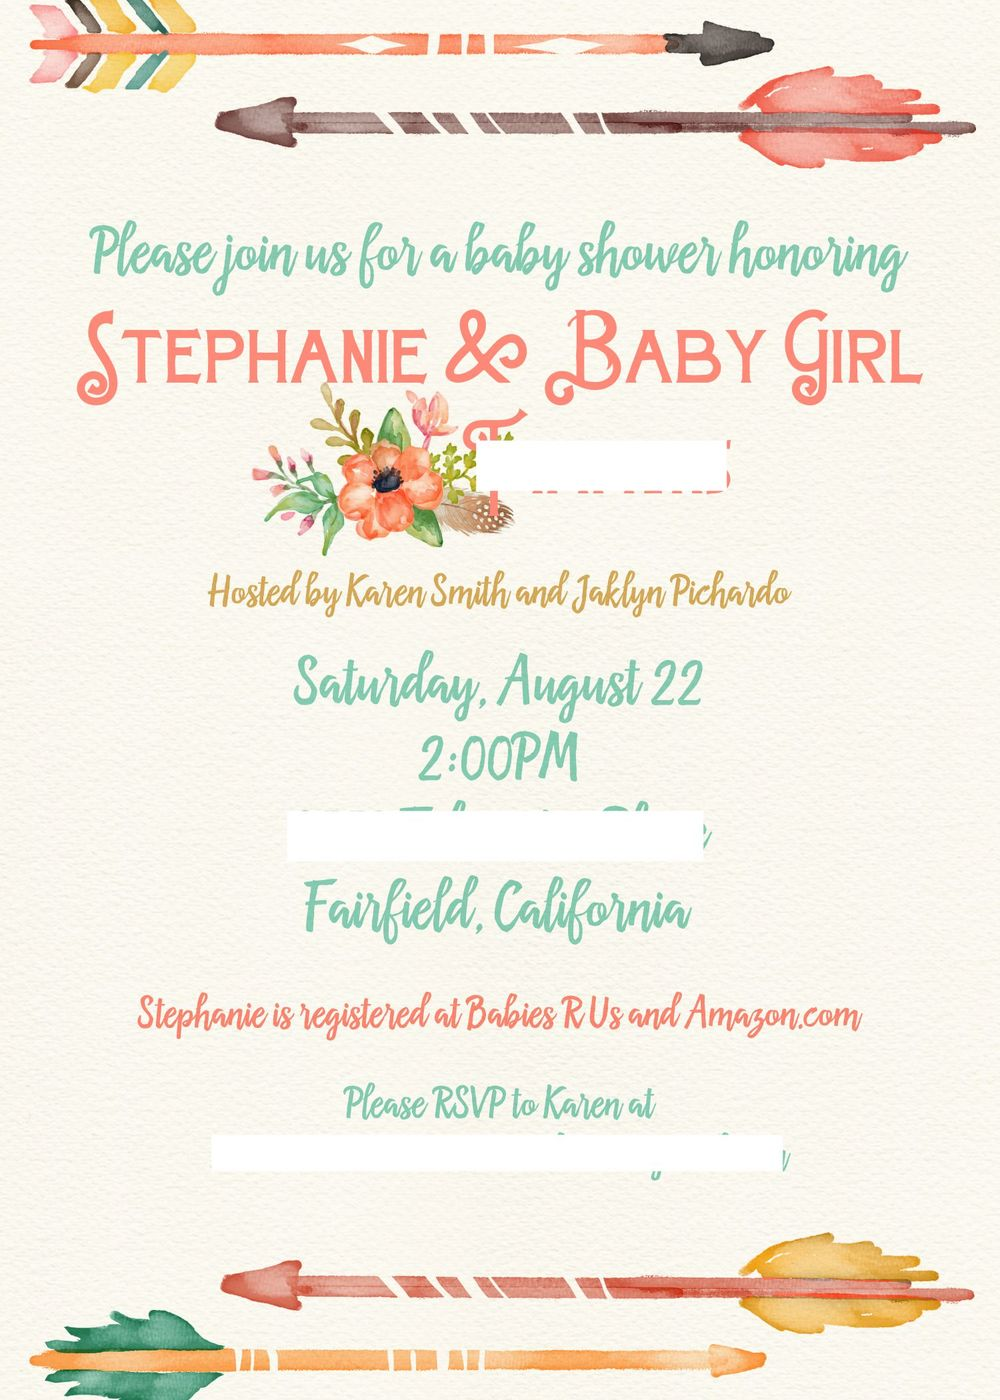 Steph's Baby Shower InviteEDITED.jpg